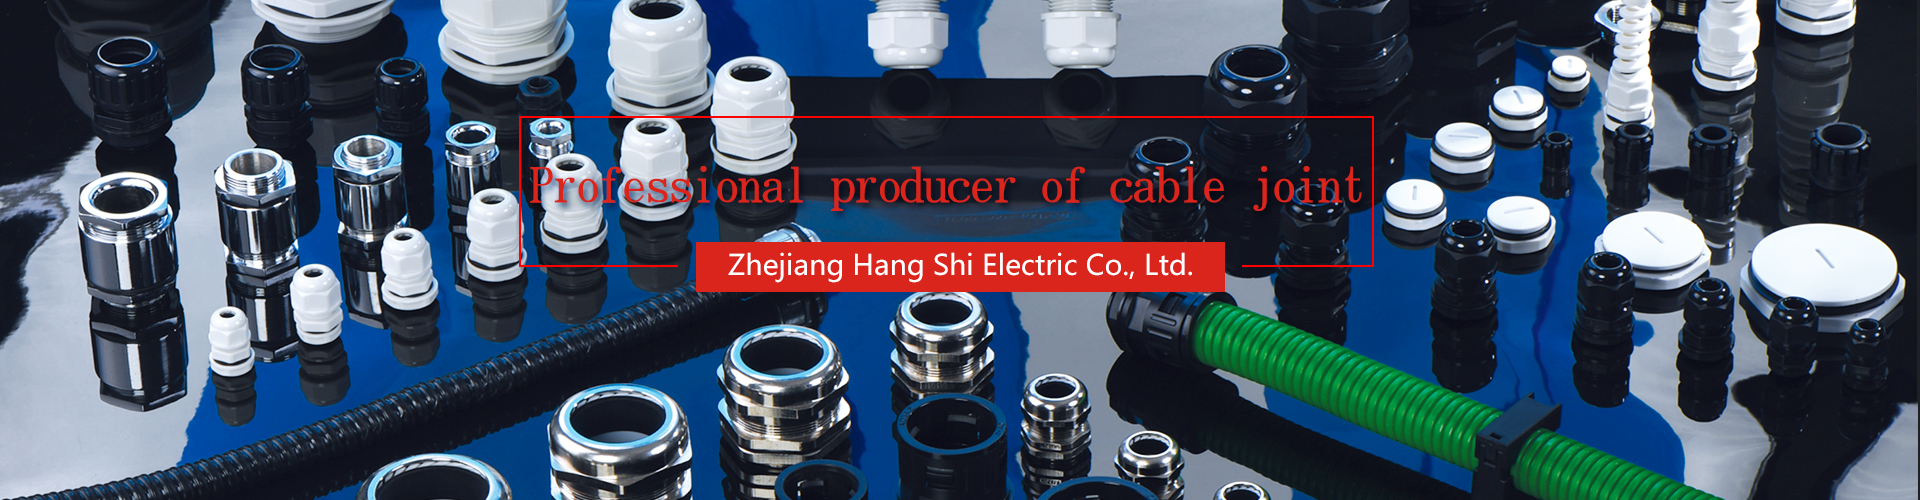 Waterproof joint - cable connector - nylon cable connector - copper cable connector - stainless steel cable joint